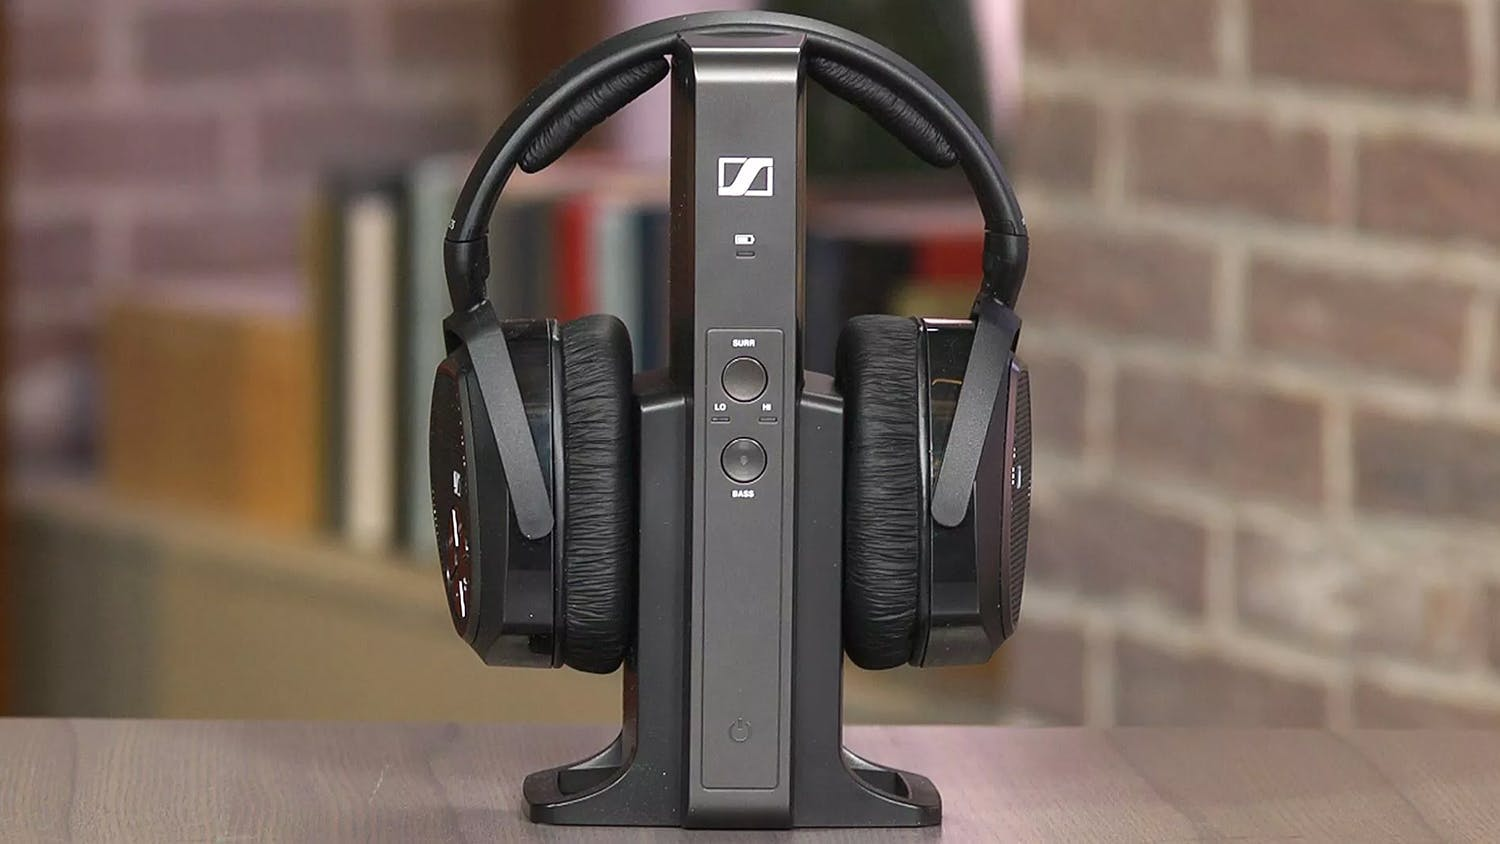 Sennheiser RS 175-U Wireless Over-Ear Headphones